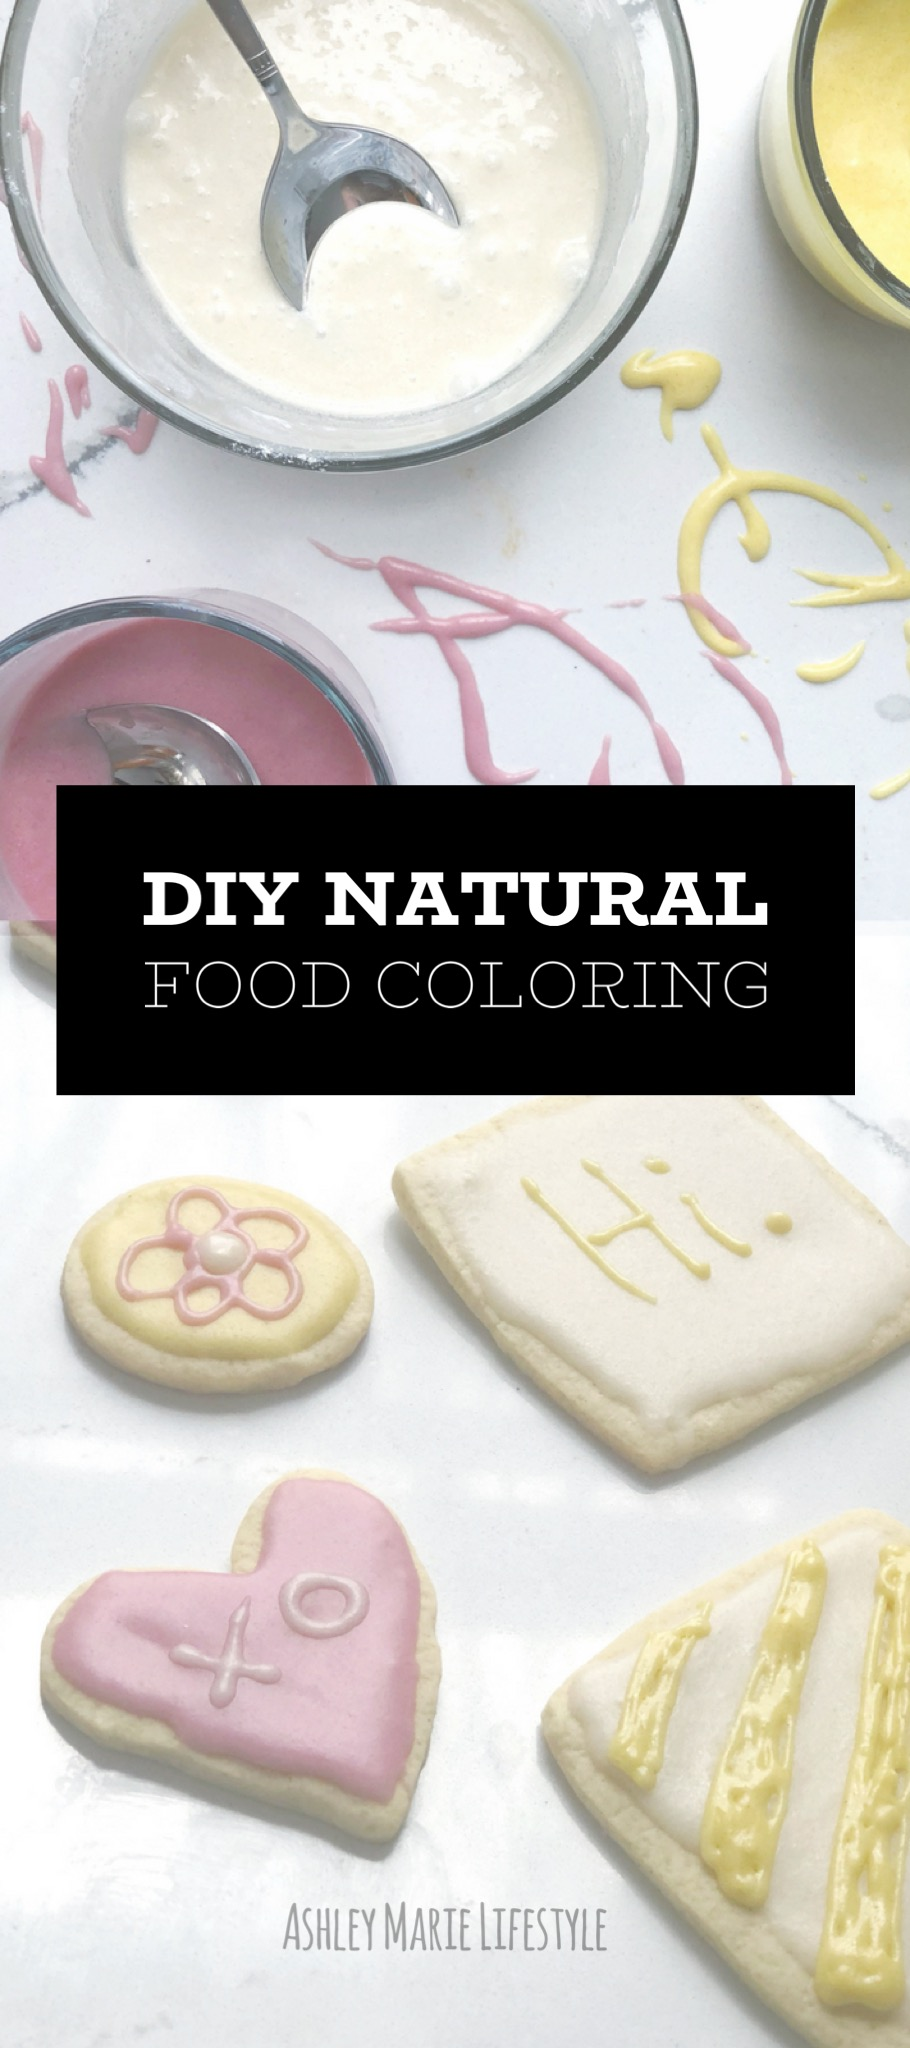 DIY Natural Food Coloring | Ashley Marie Farm and Bakery